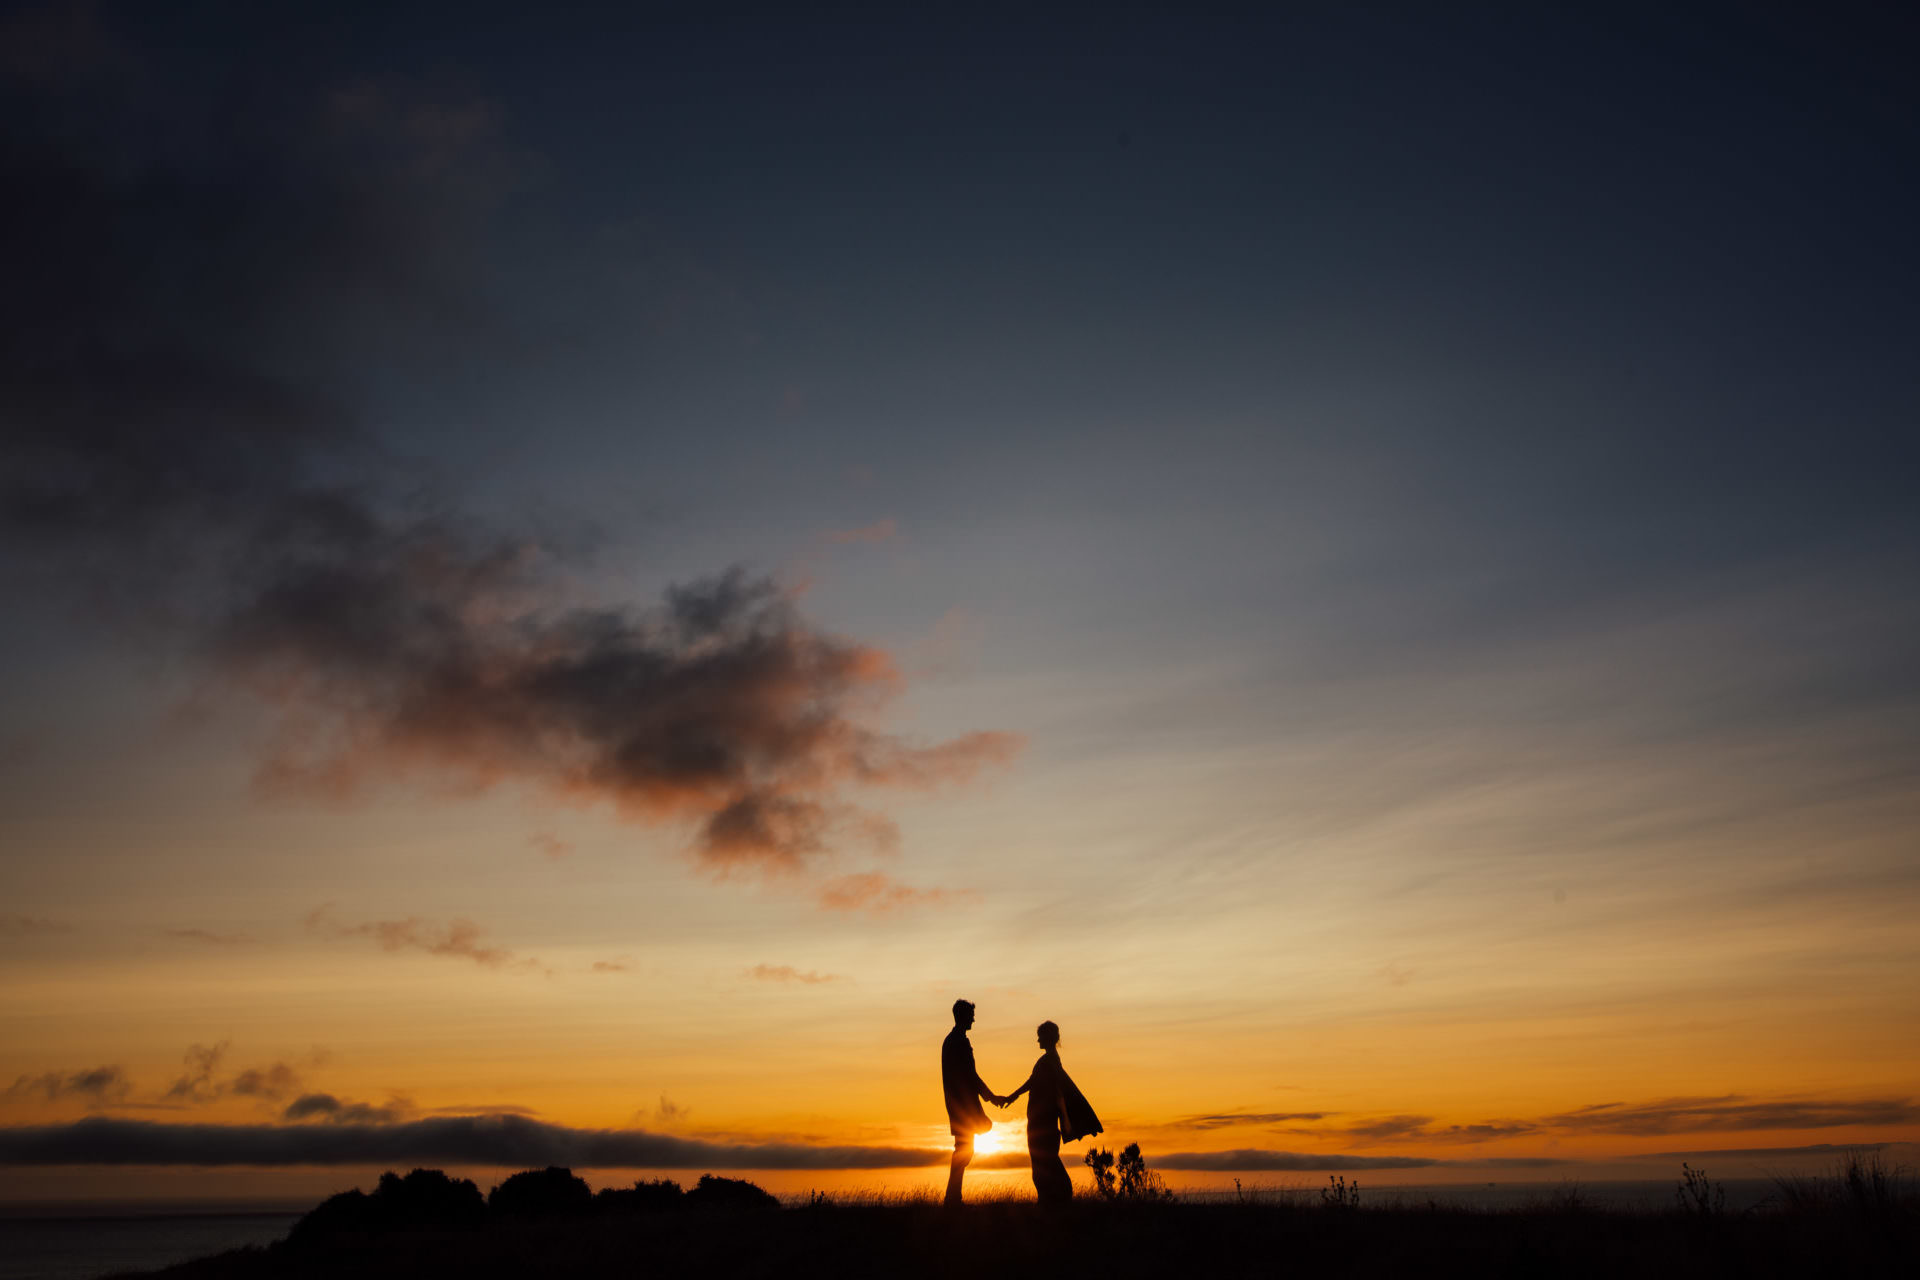 Wedding silhouette sunset photo with bride and groom